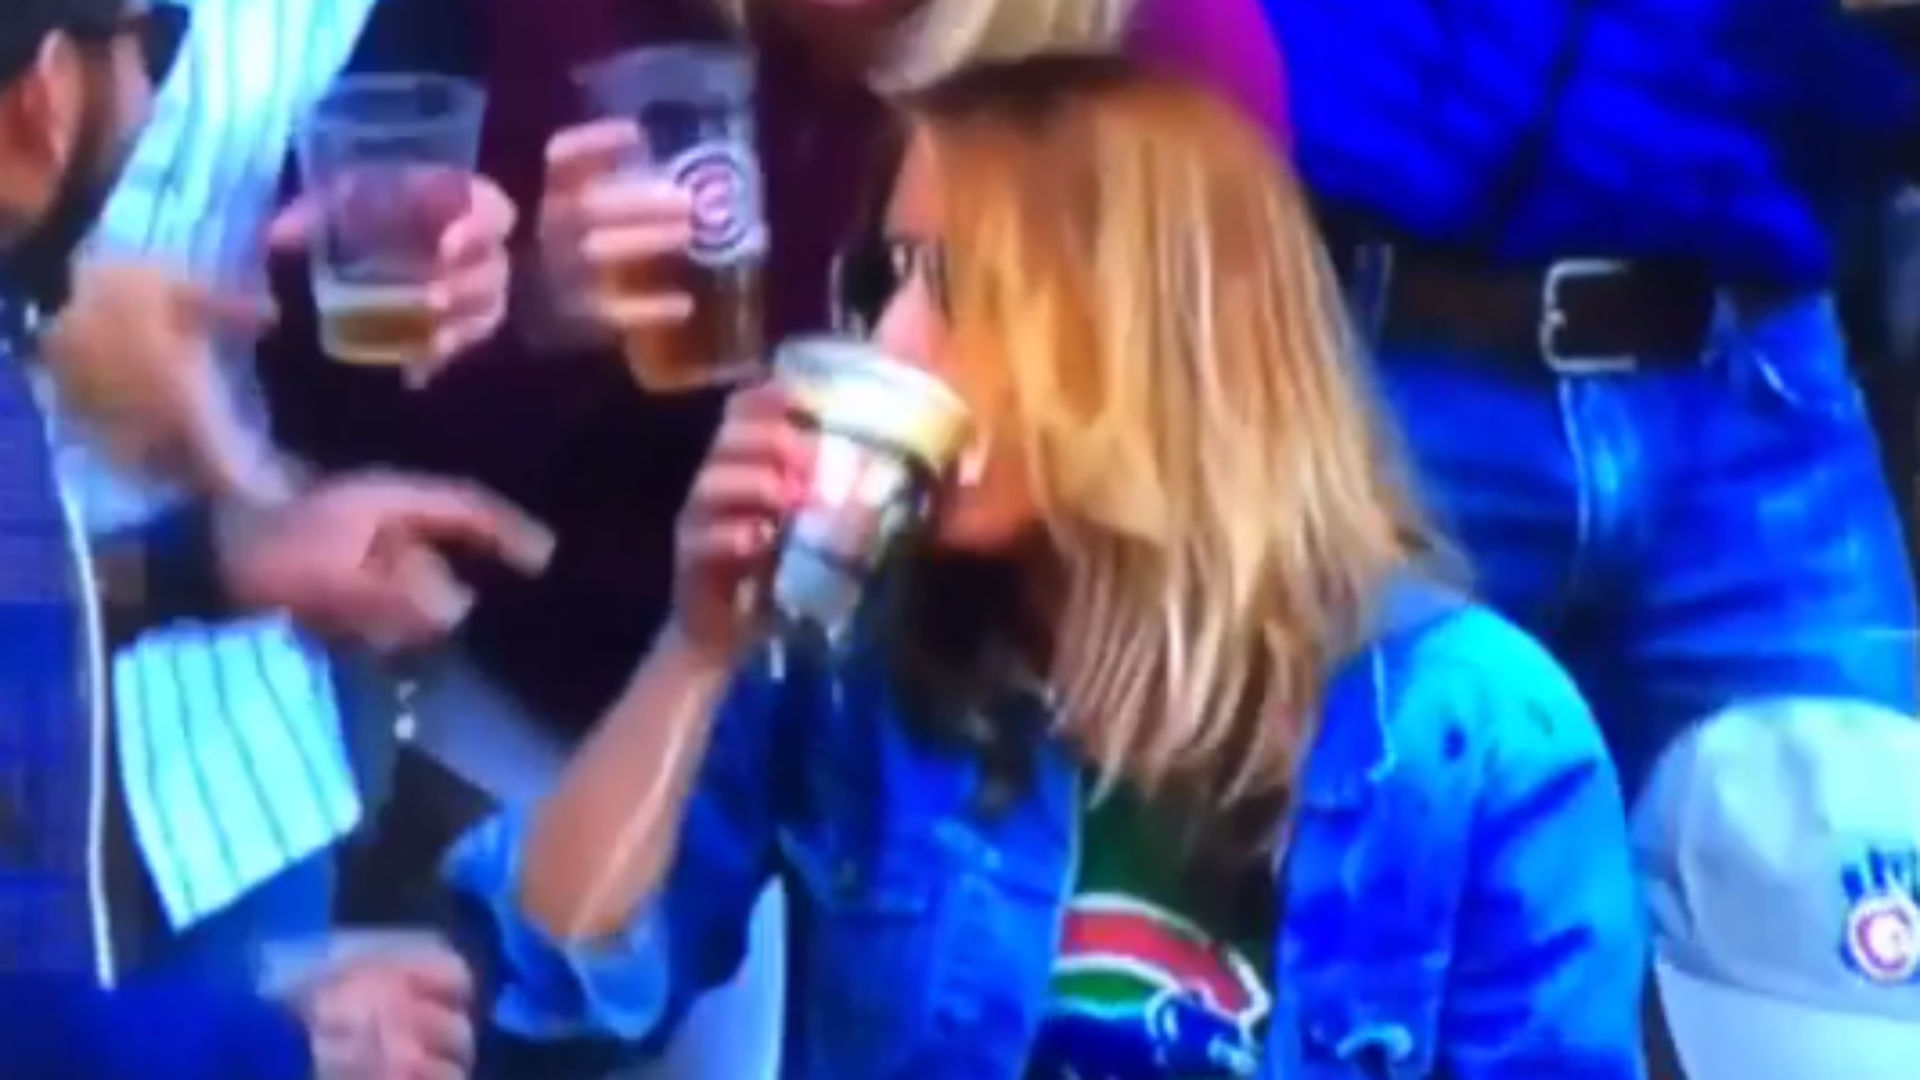 Cubs fan chugs beer after catching baseball in cup